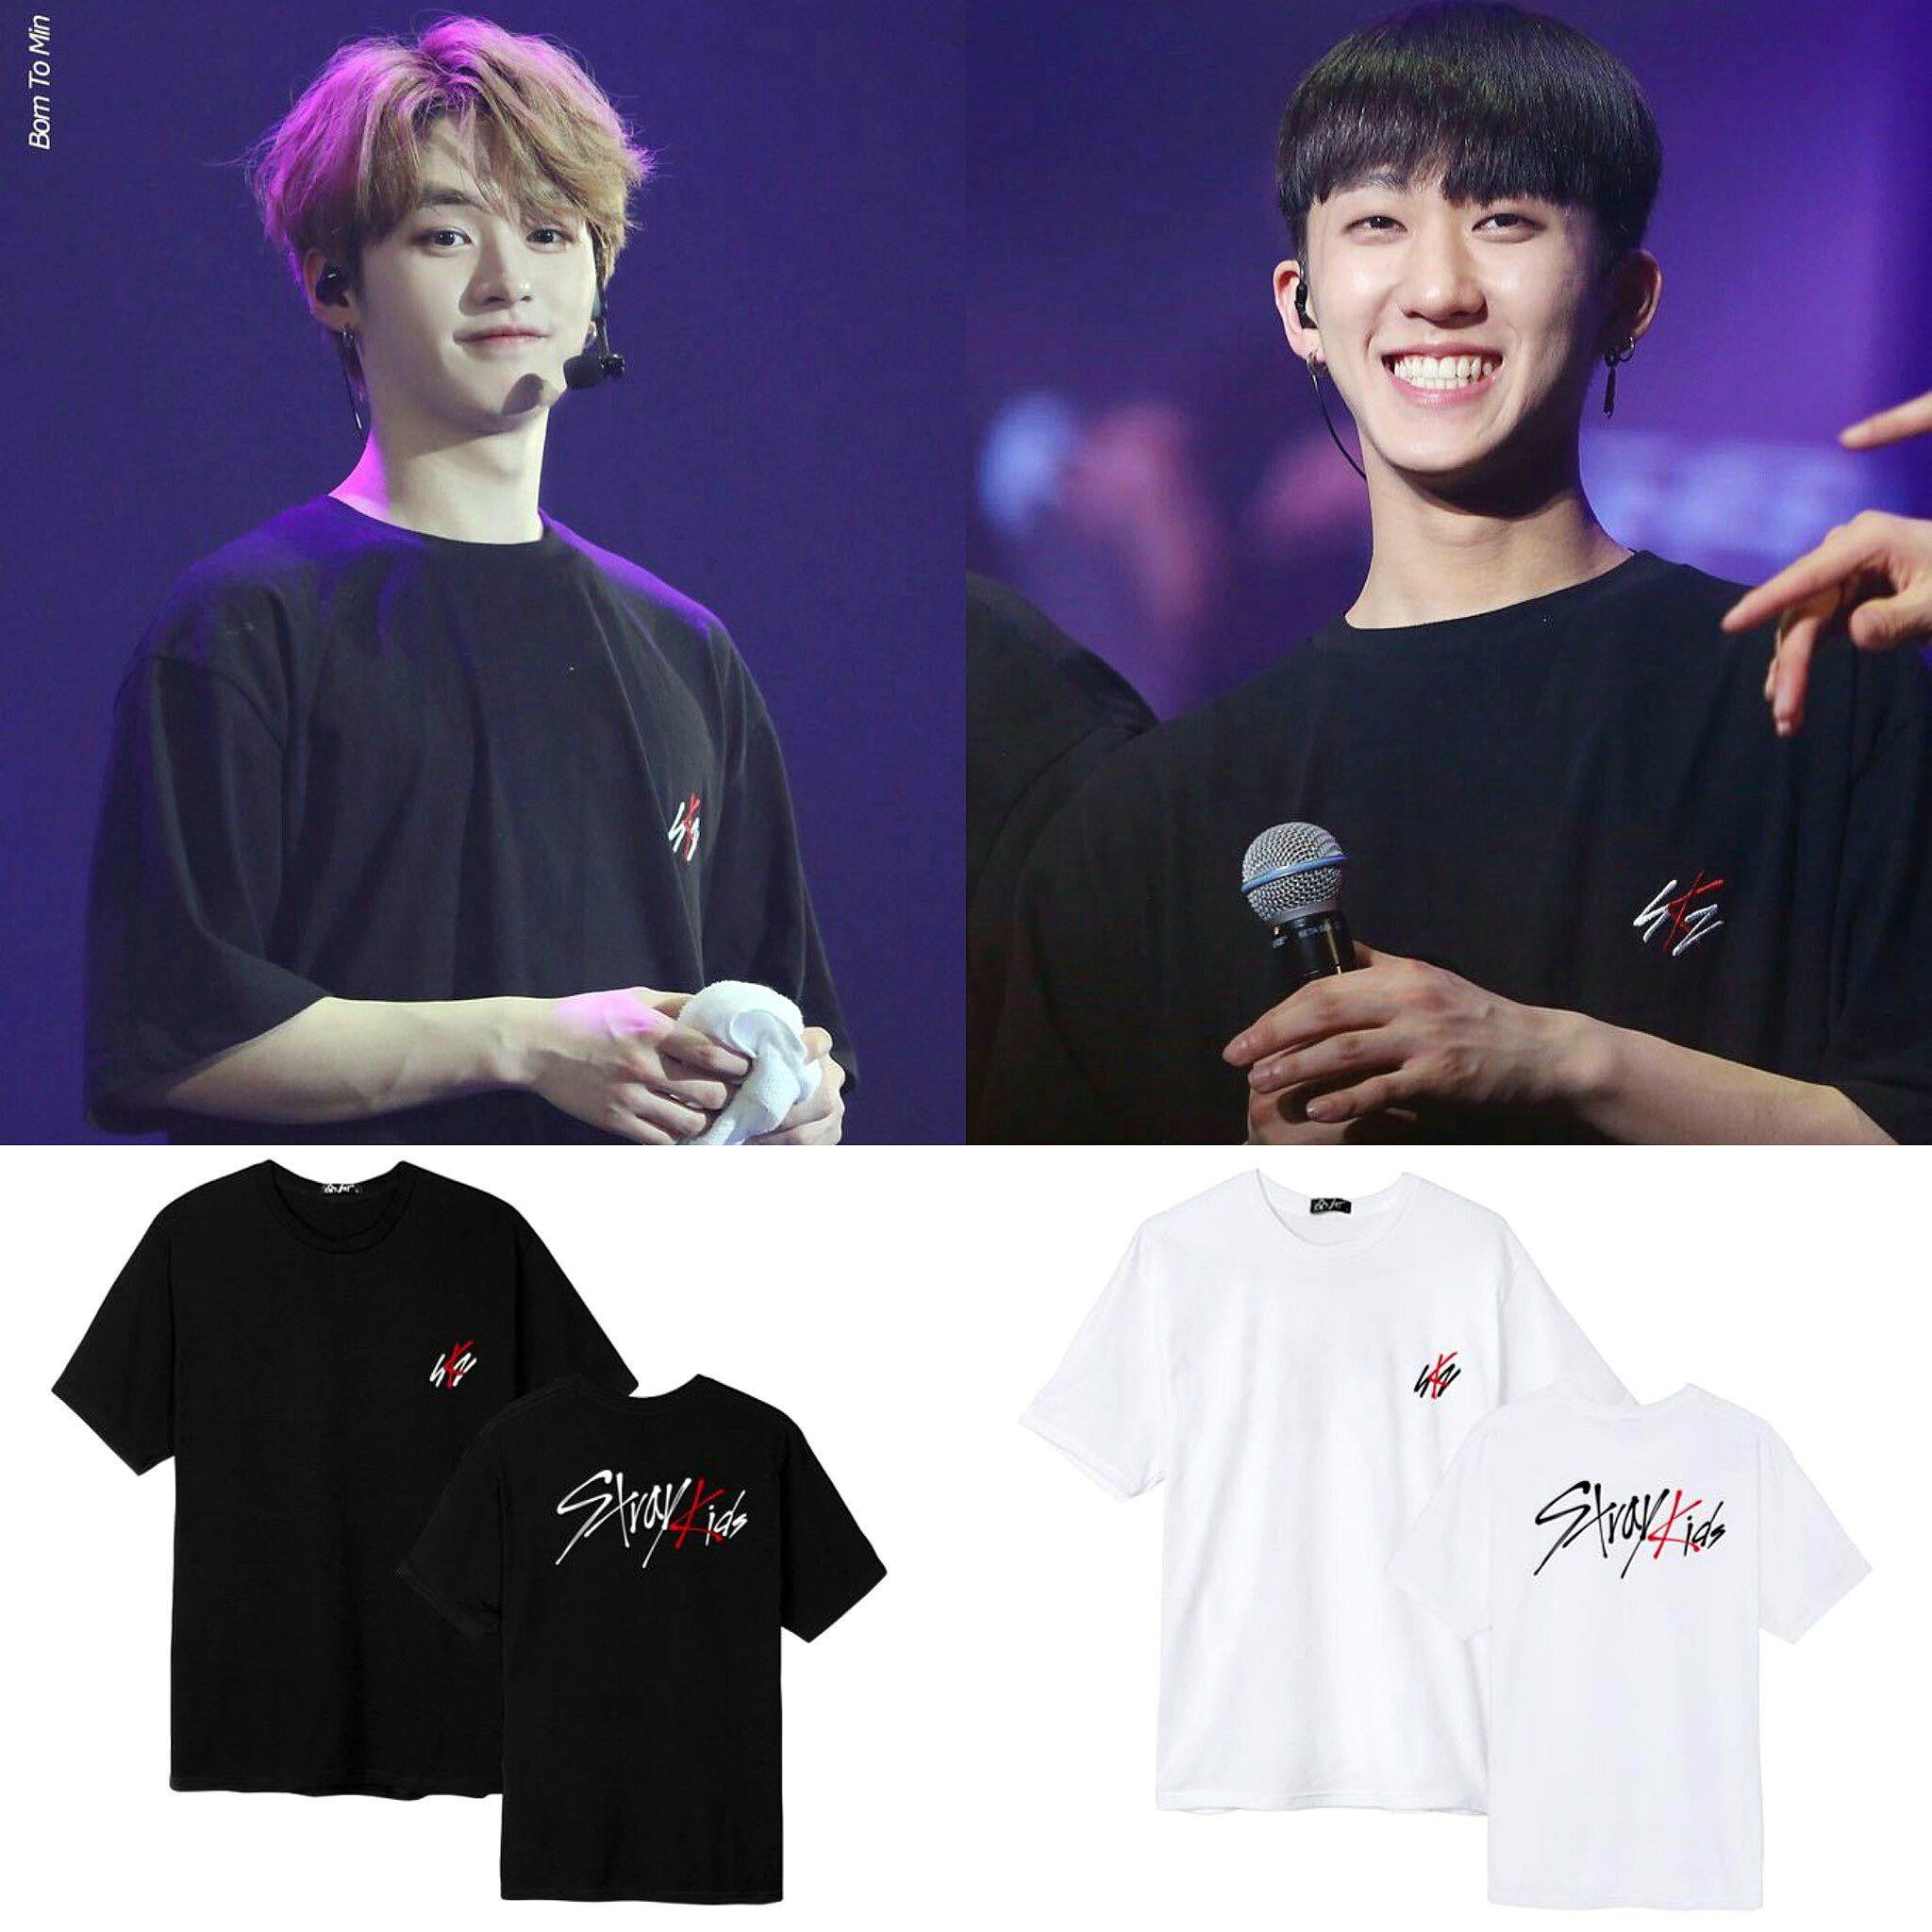 a1267985a STRAY KIDS DEBUT T-SHIRT, Entertainment, K-Wave on Carousell